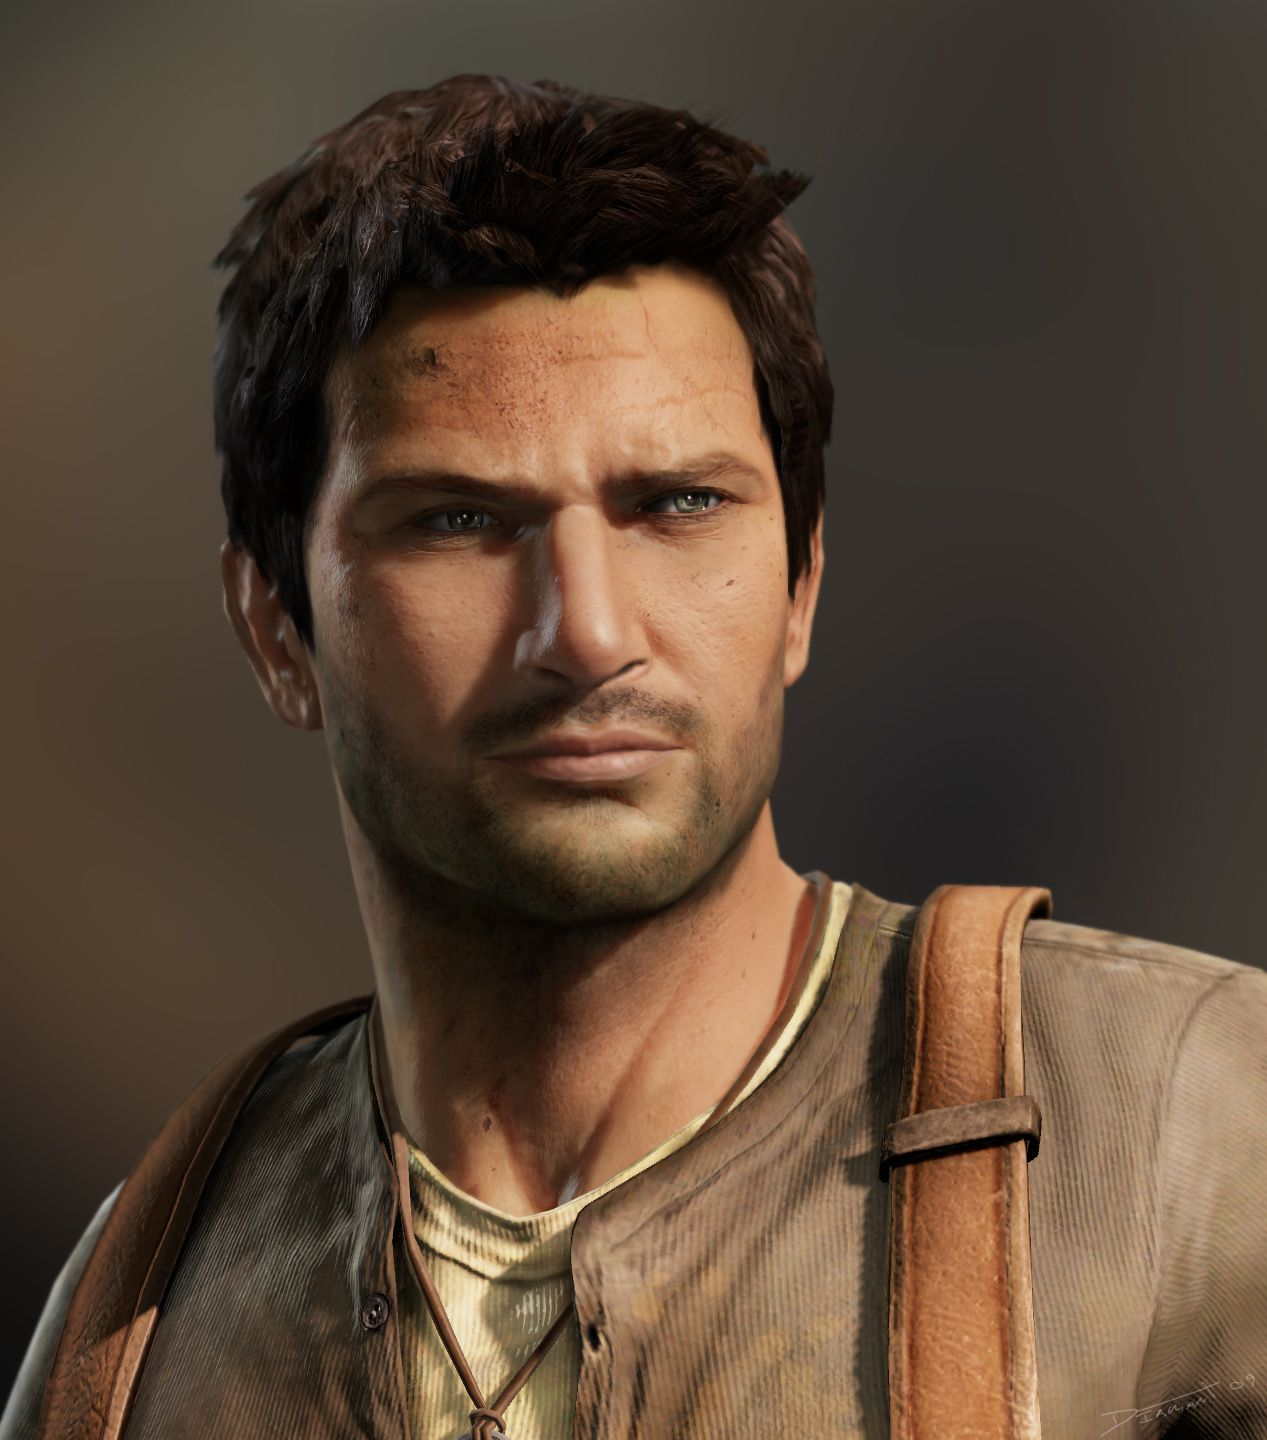 30 DAY VIDEO GAME CHALLENGE: Jour 5 Le personnage qui me semble me ressembler (ou ...), NATHAN DRAKE